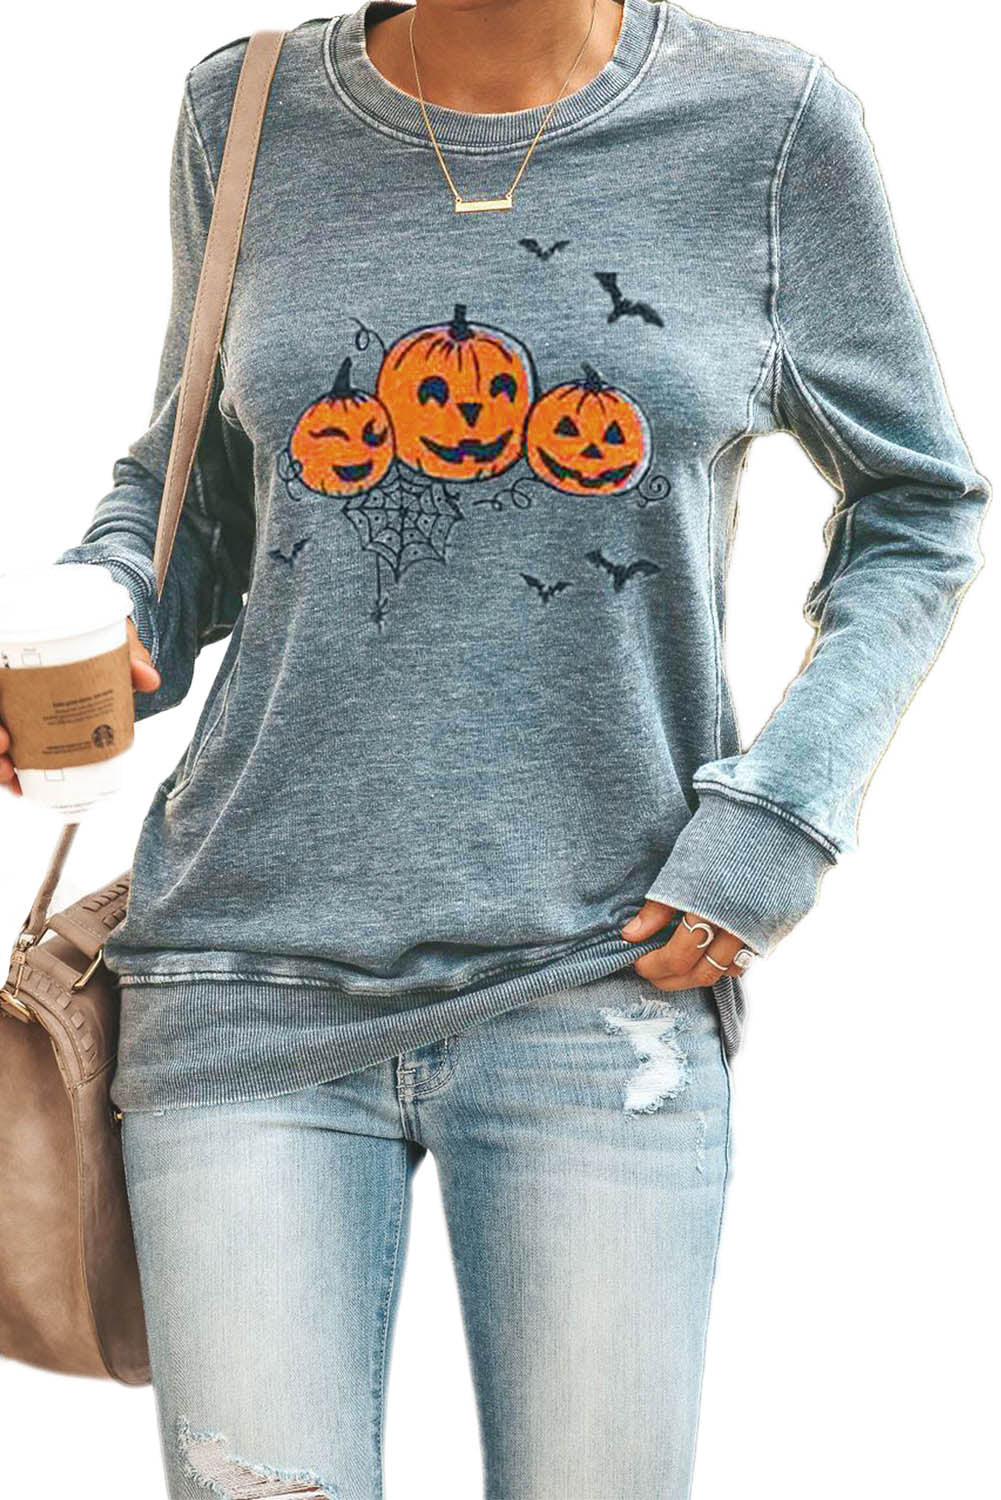 Gray Round Neck Pumpkin Print Halloween Pullover Sweatshirt Sweatshirts & Hoodies Discount Designer Fashion Clothes Shoes Bags Women Men Kids Children Black Owned Business